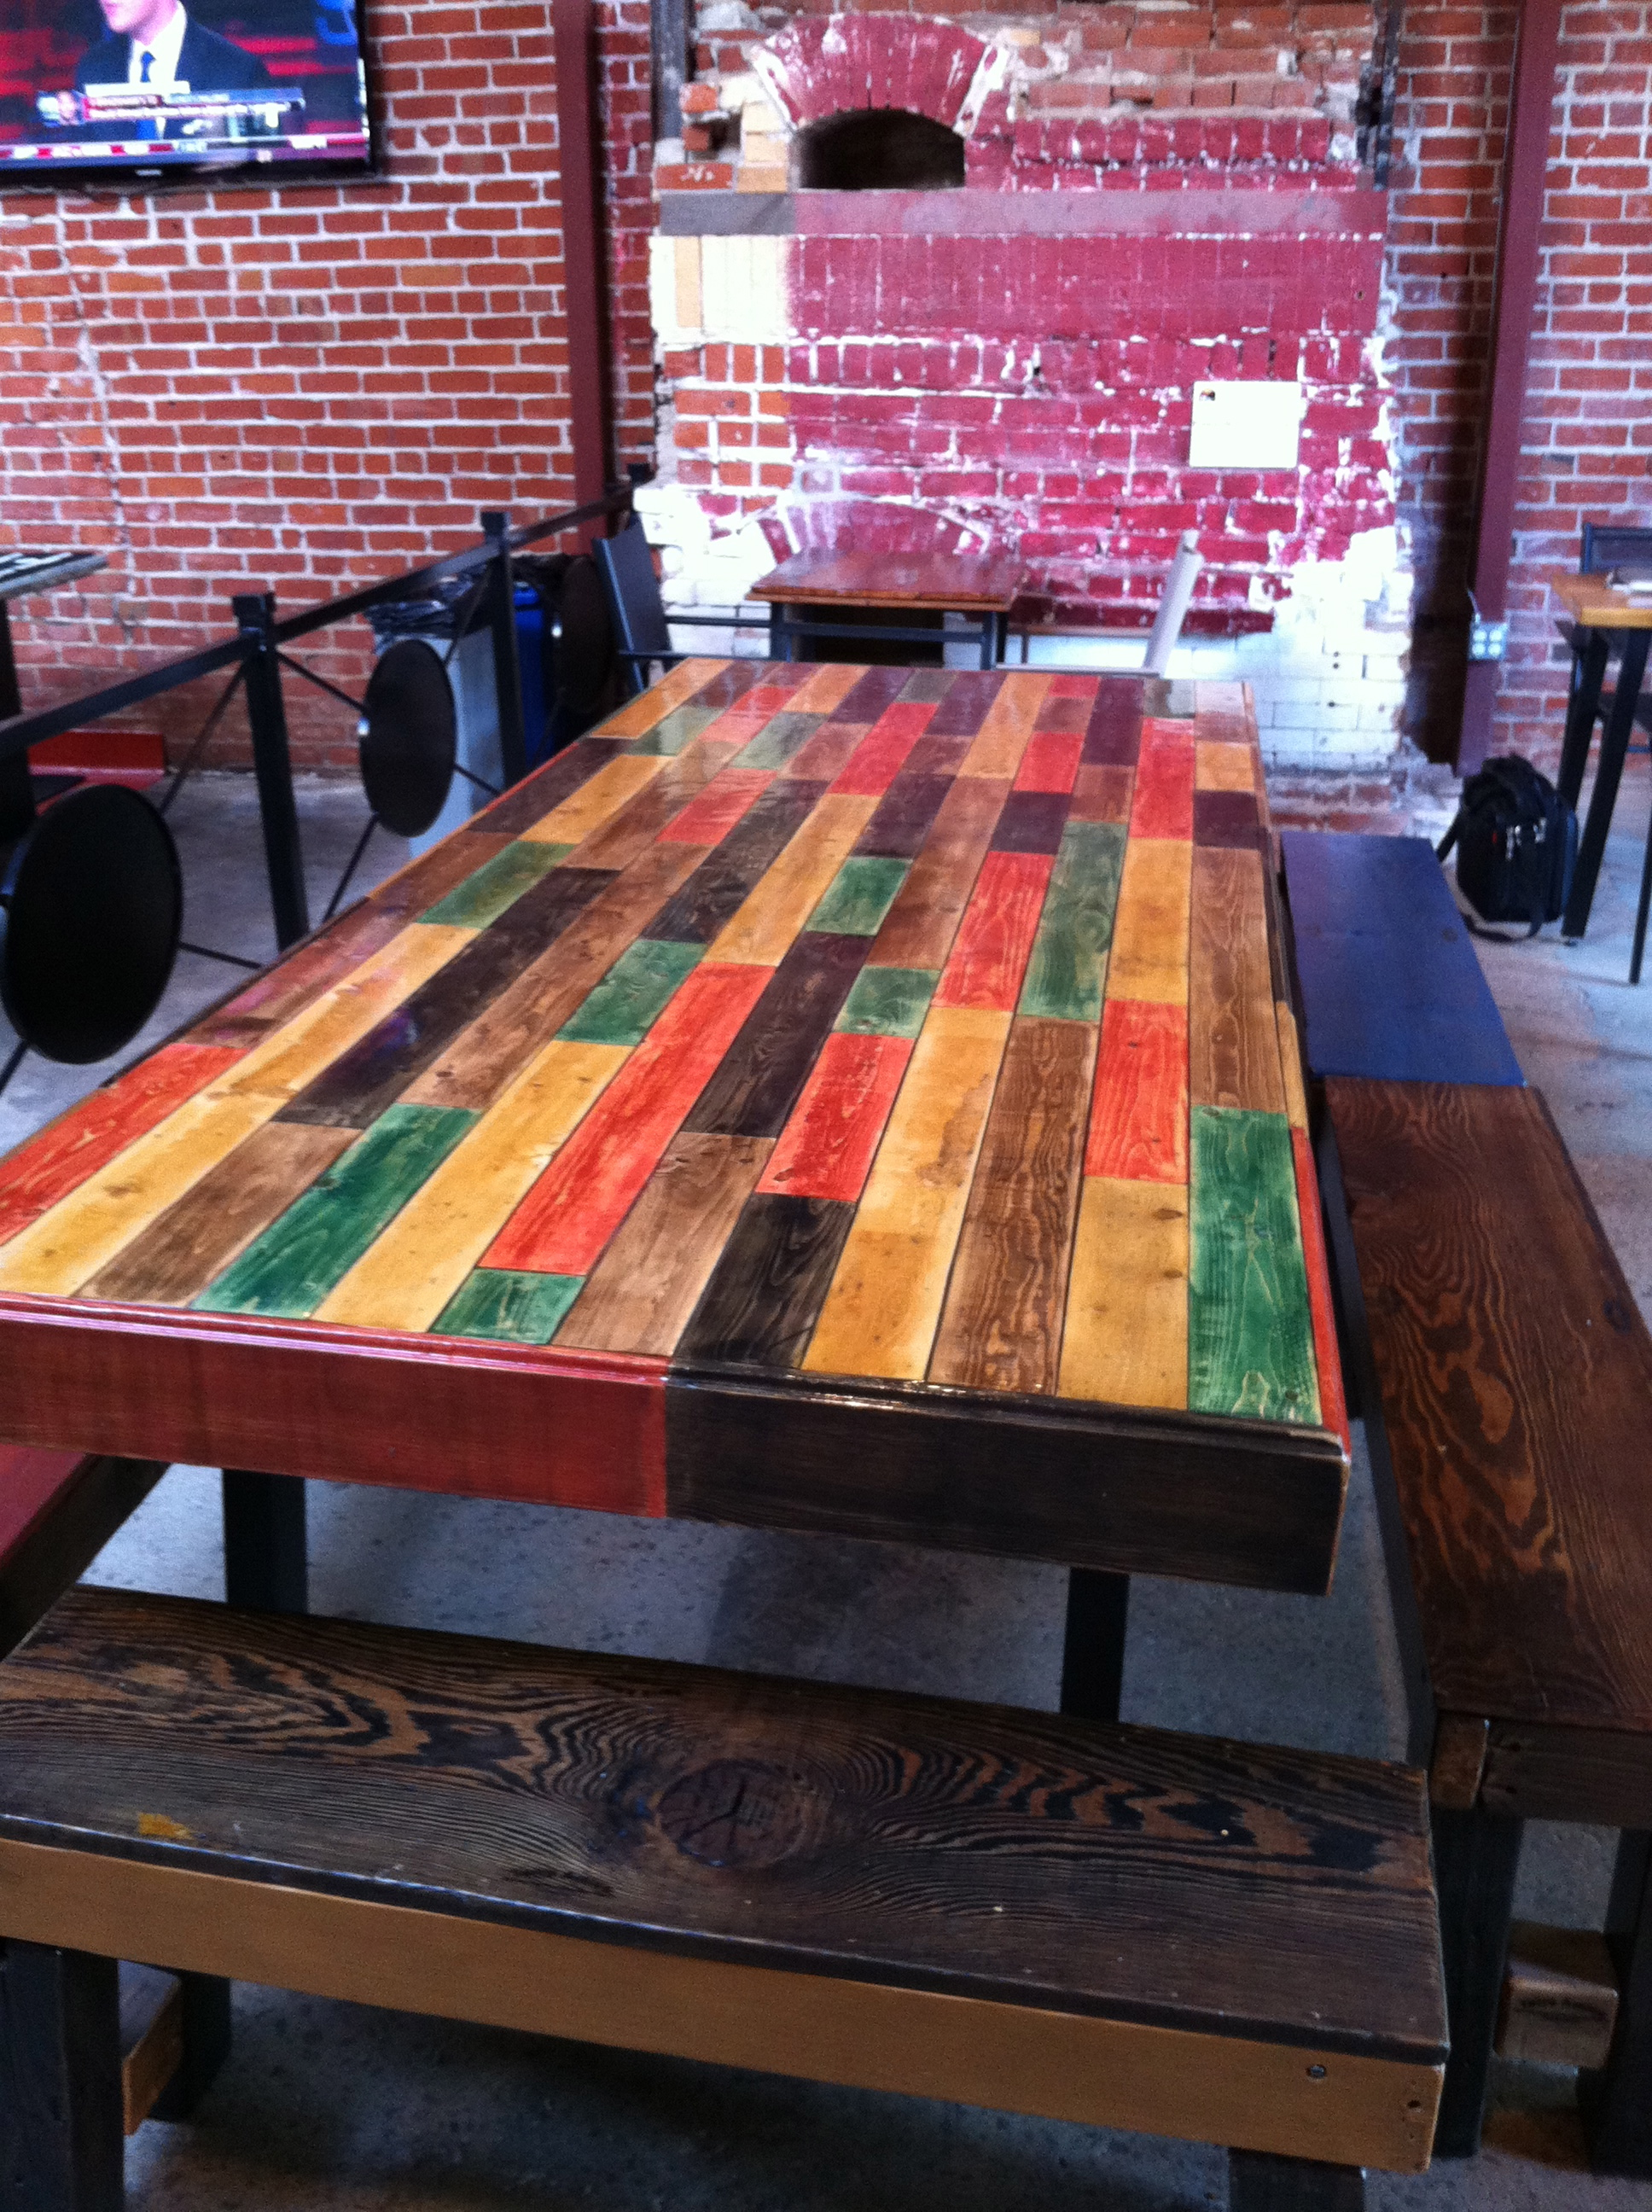 Terra Amico Table in San Pedro Square Market, San Jose